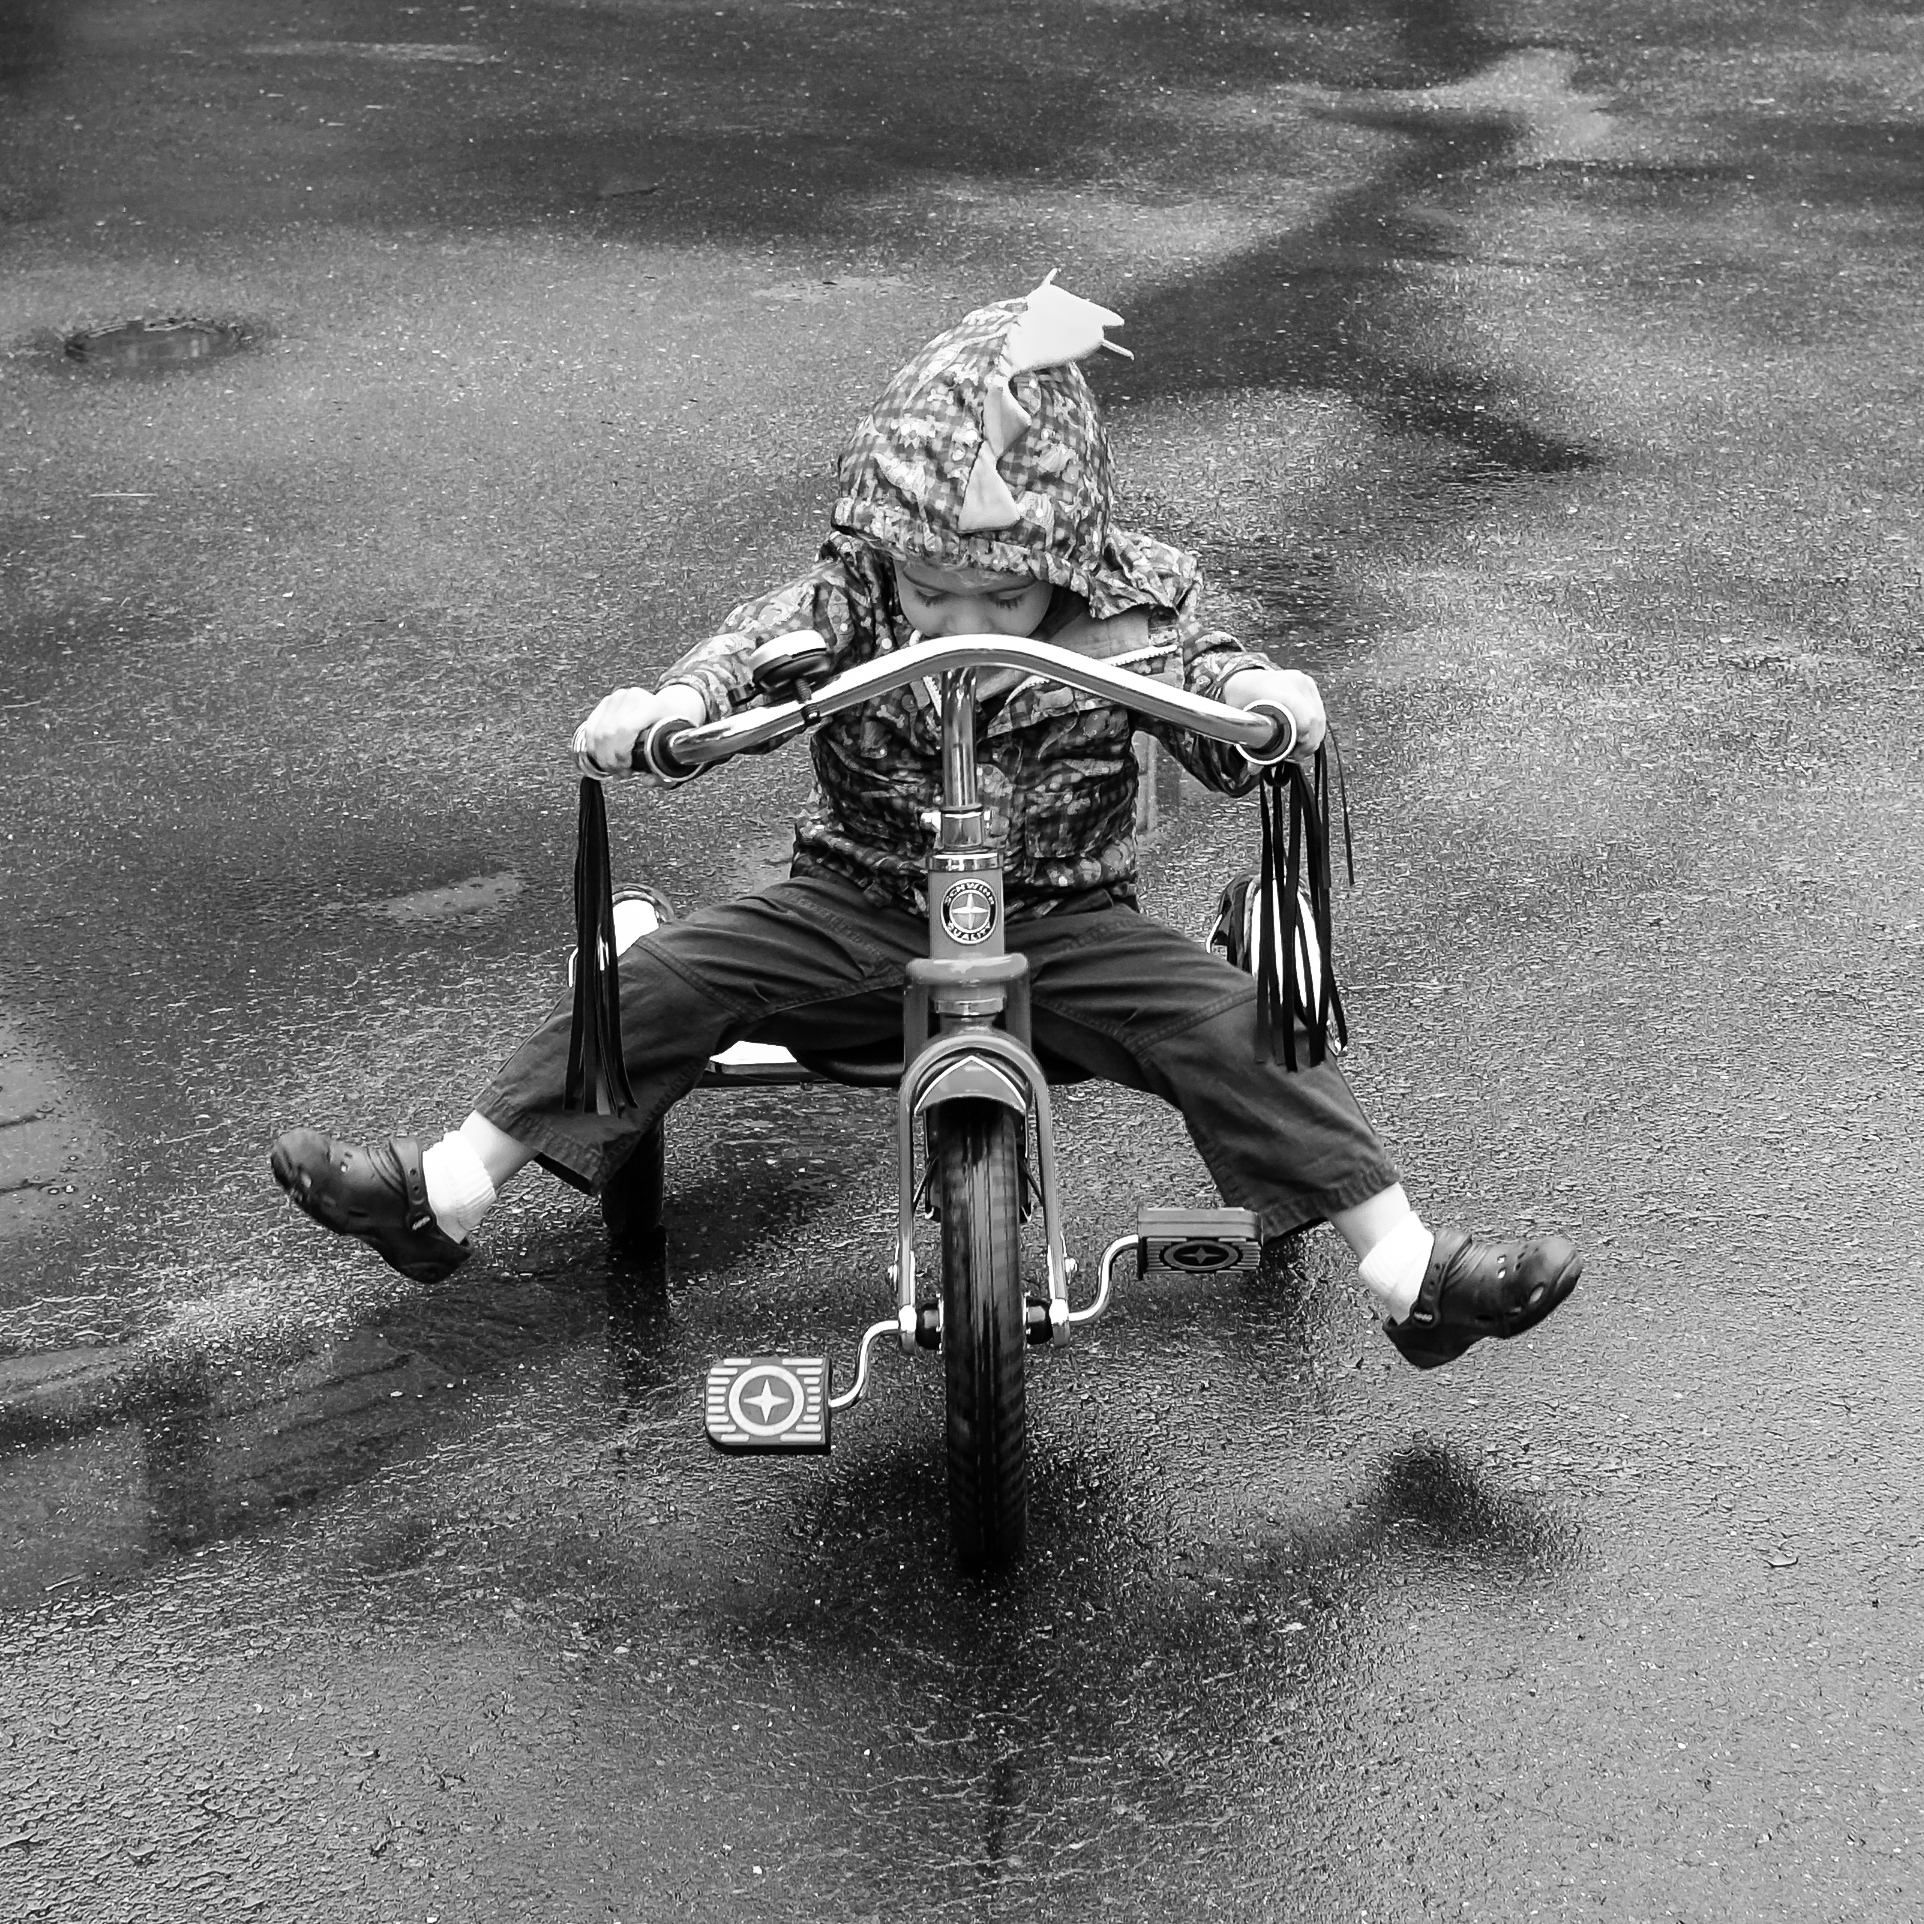 A young boy enjoys his tricycle in the rain.